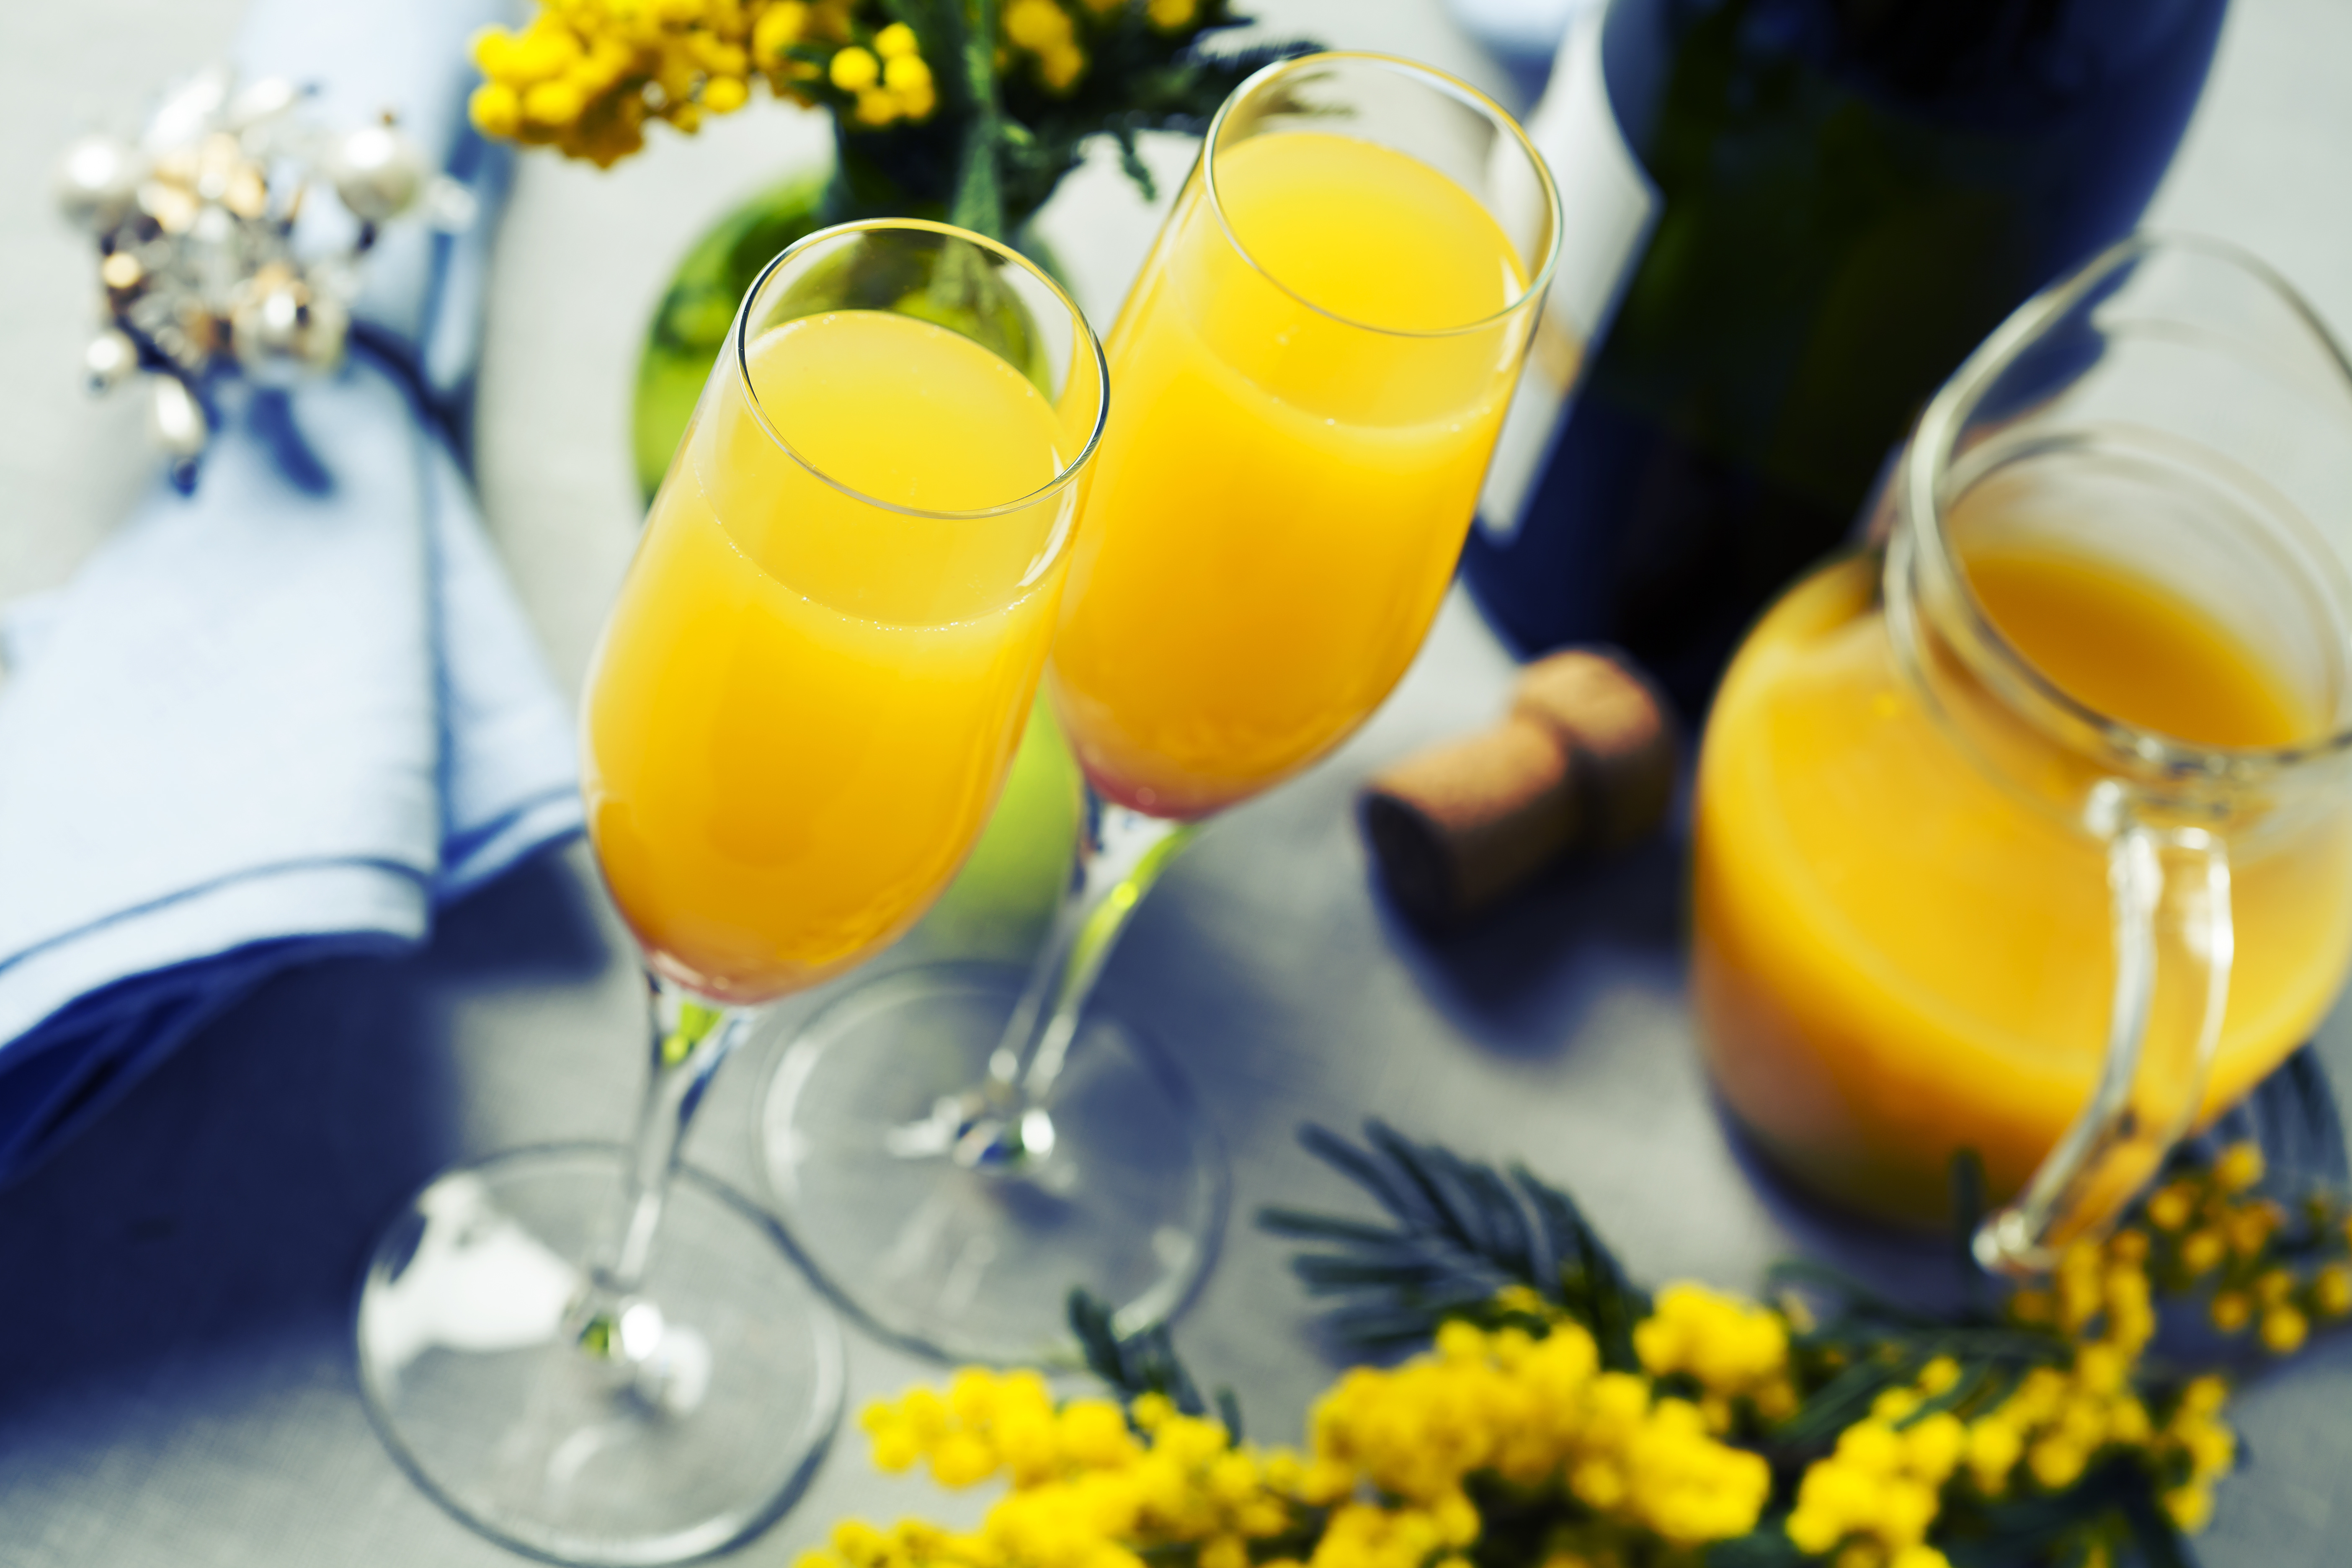 TASTY TUESDAY'S: MIMOSA RECIPES WITH A TWIST